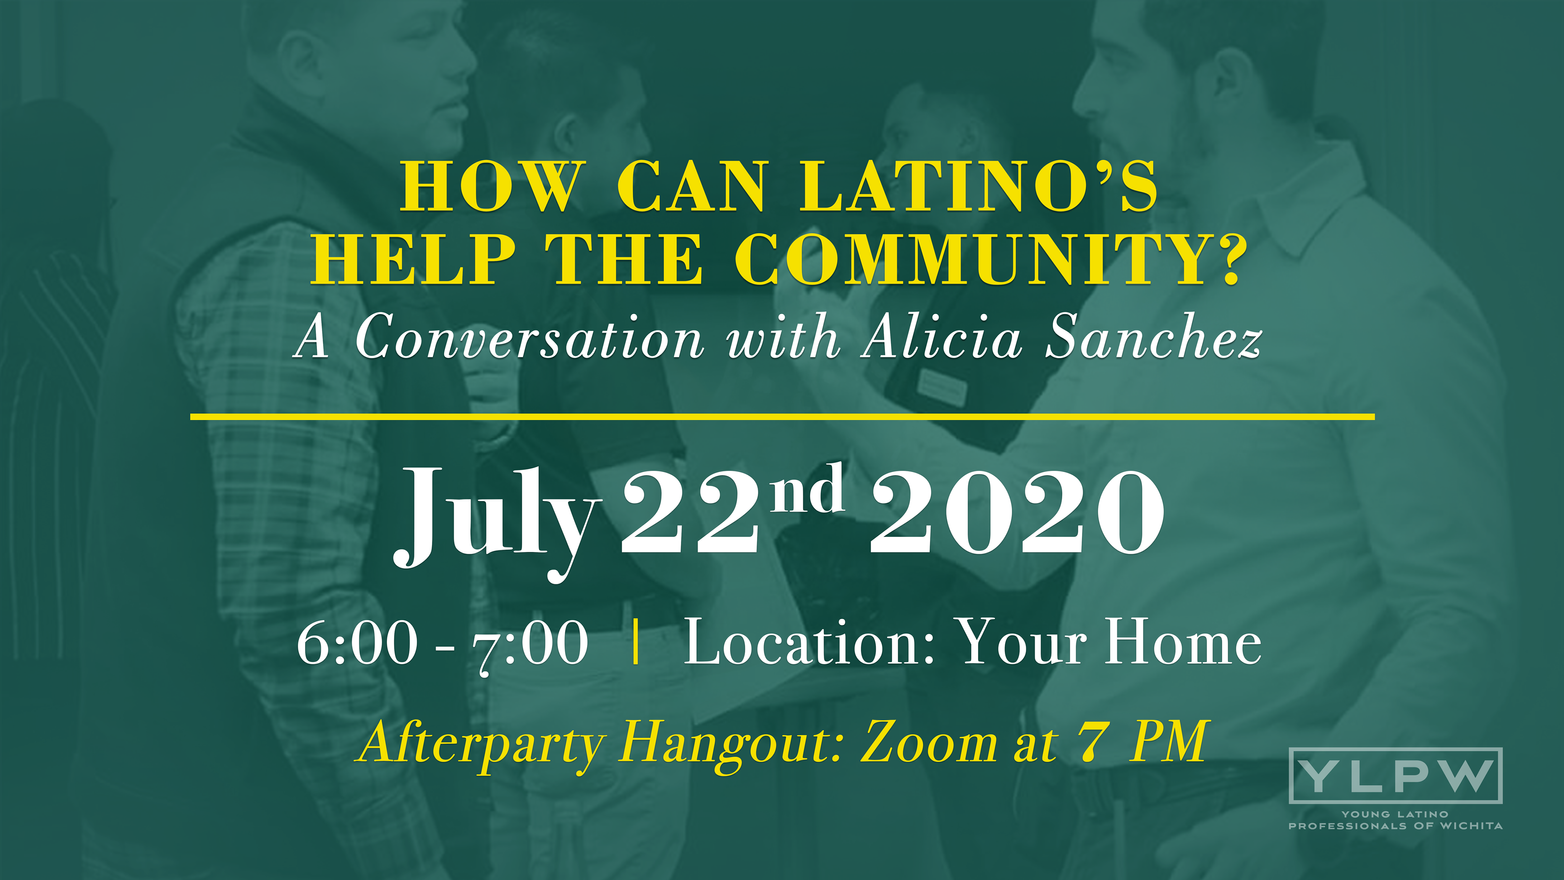 How Can Latino's Help the Community?